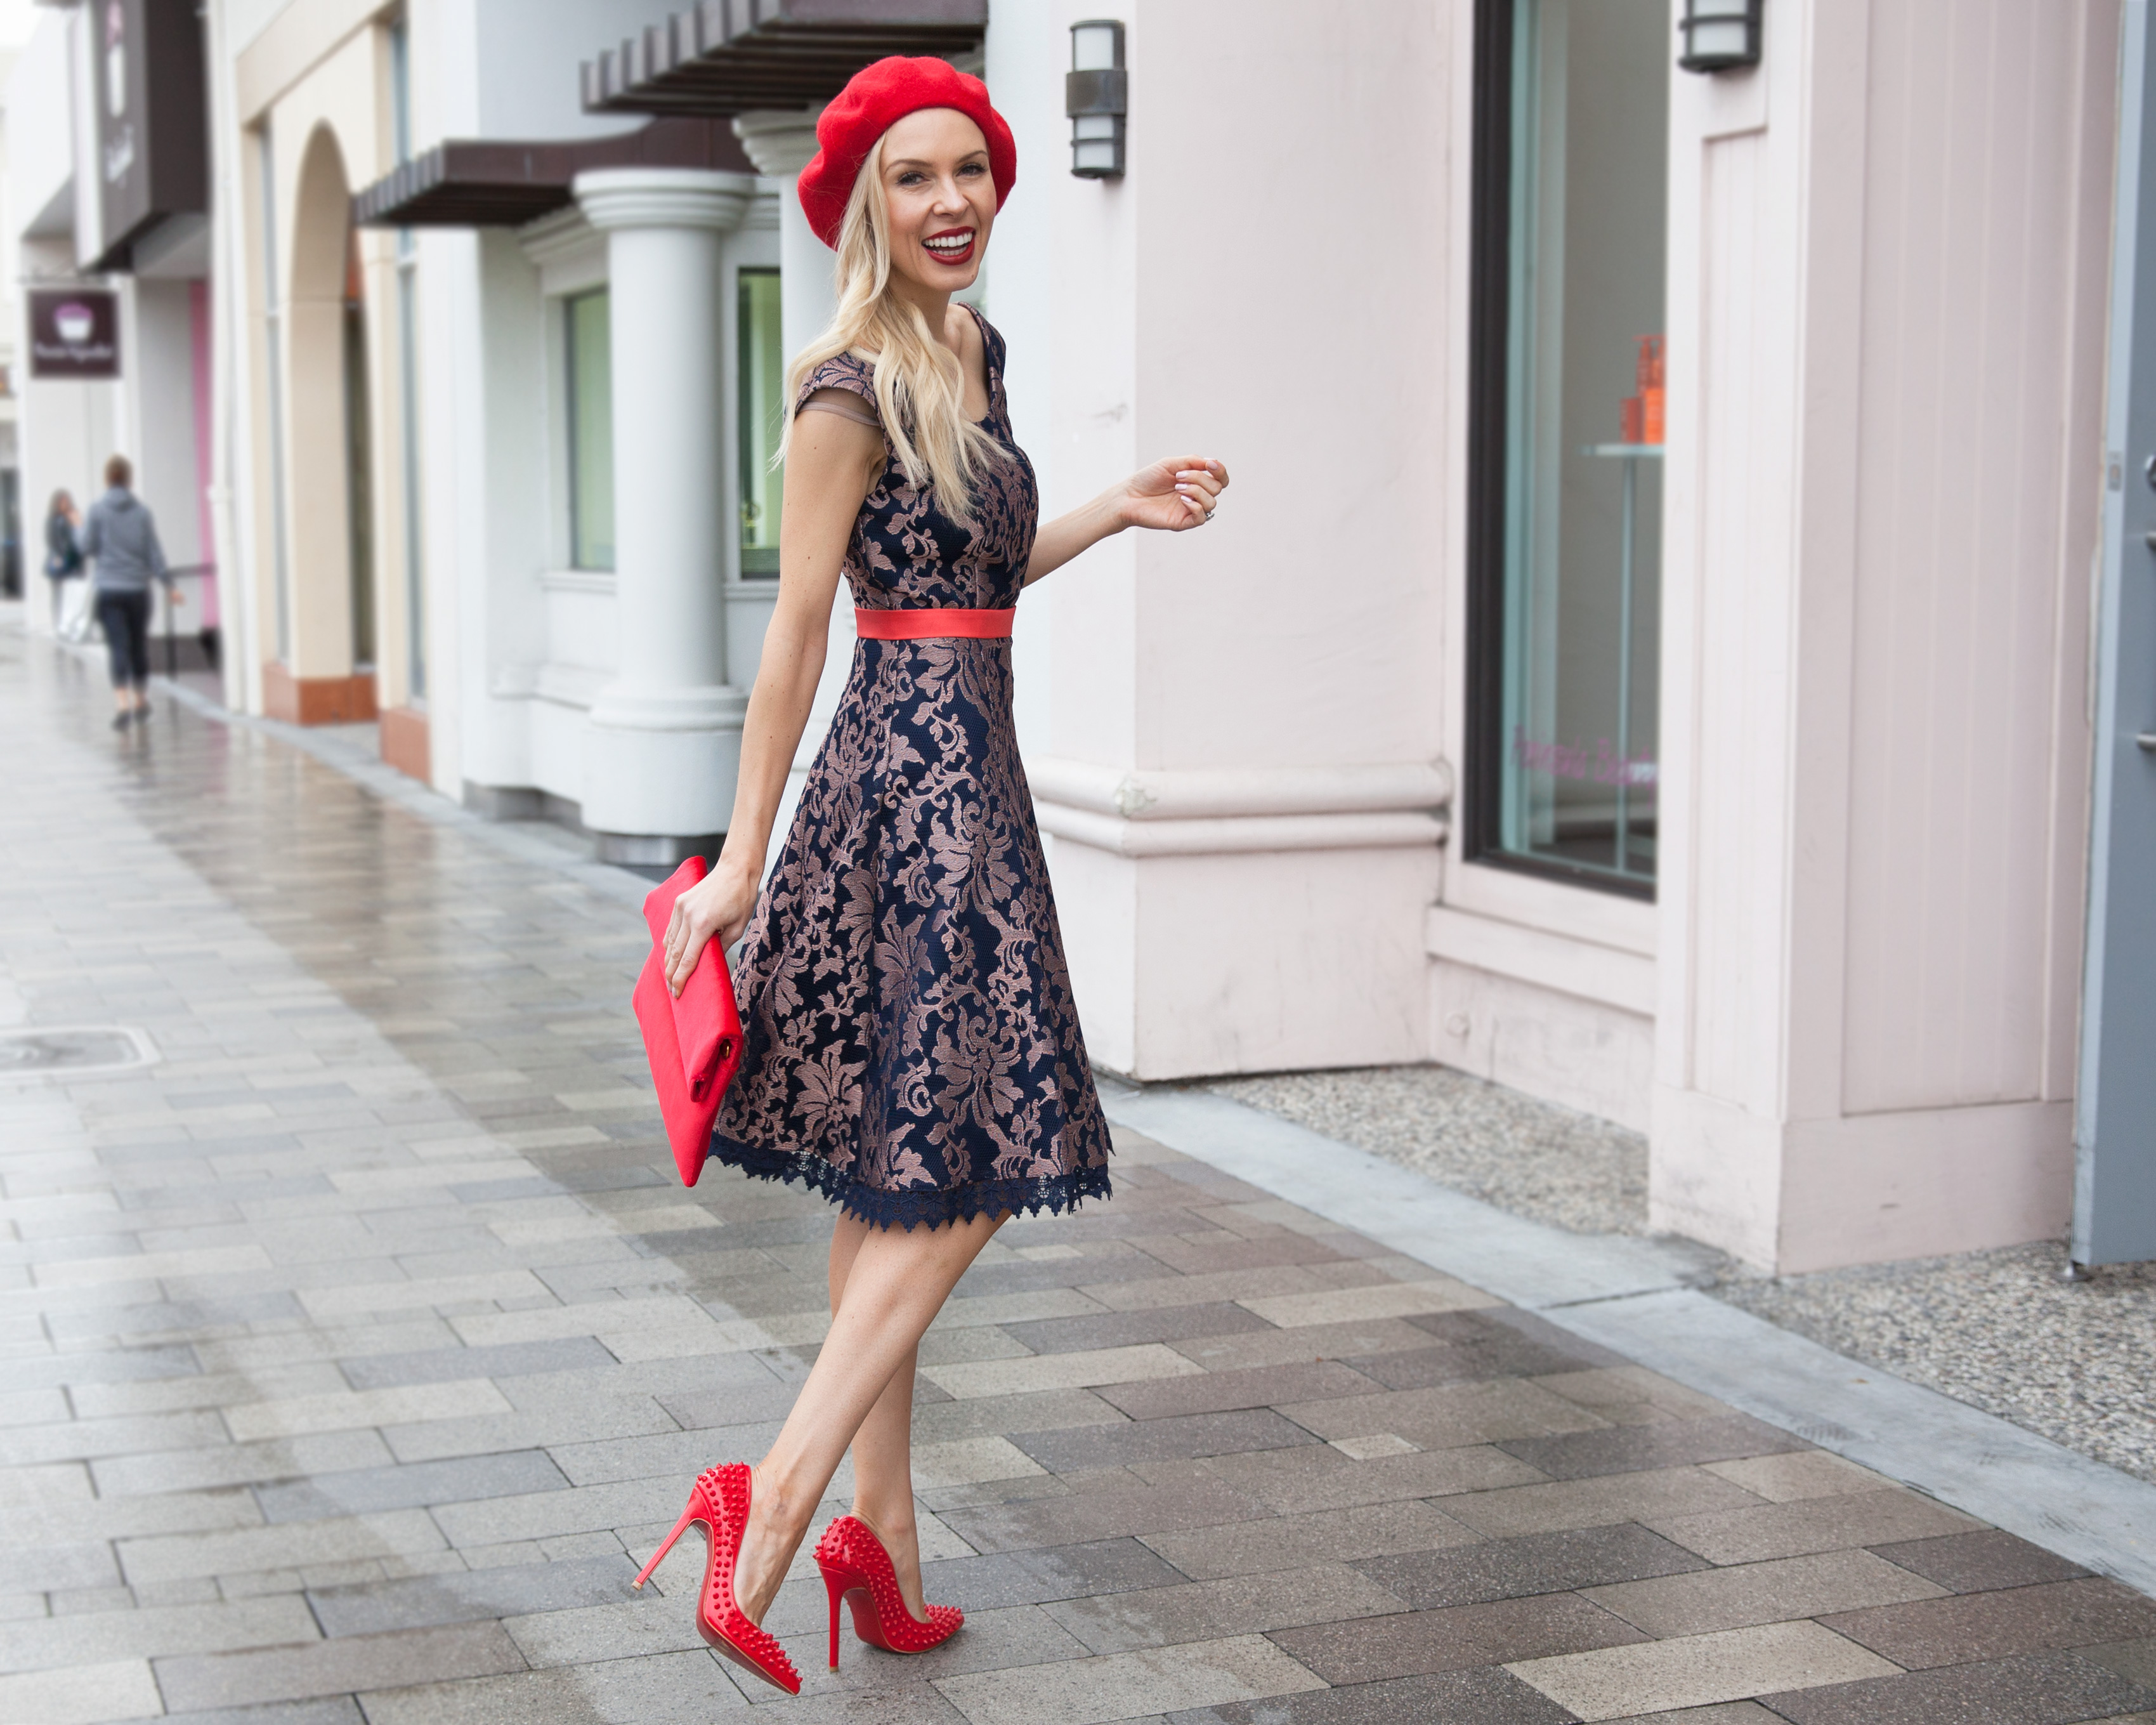 review australia dress valentines day style lombard